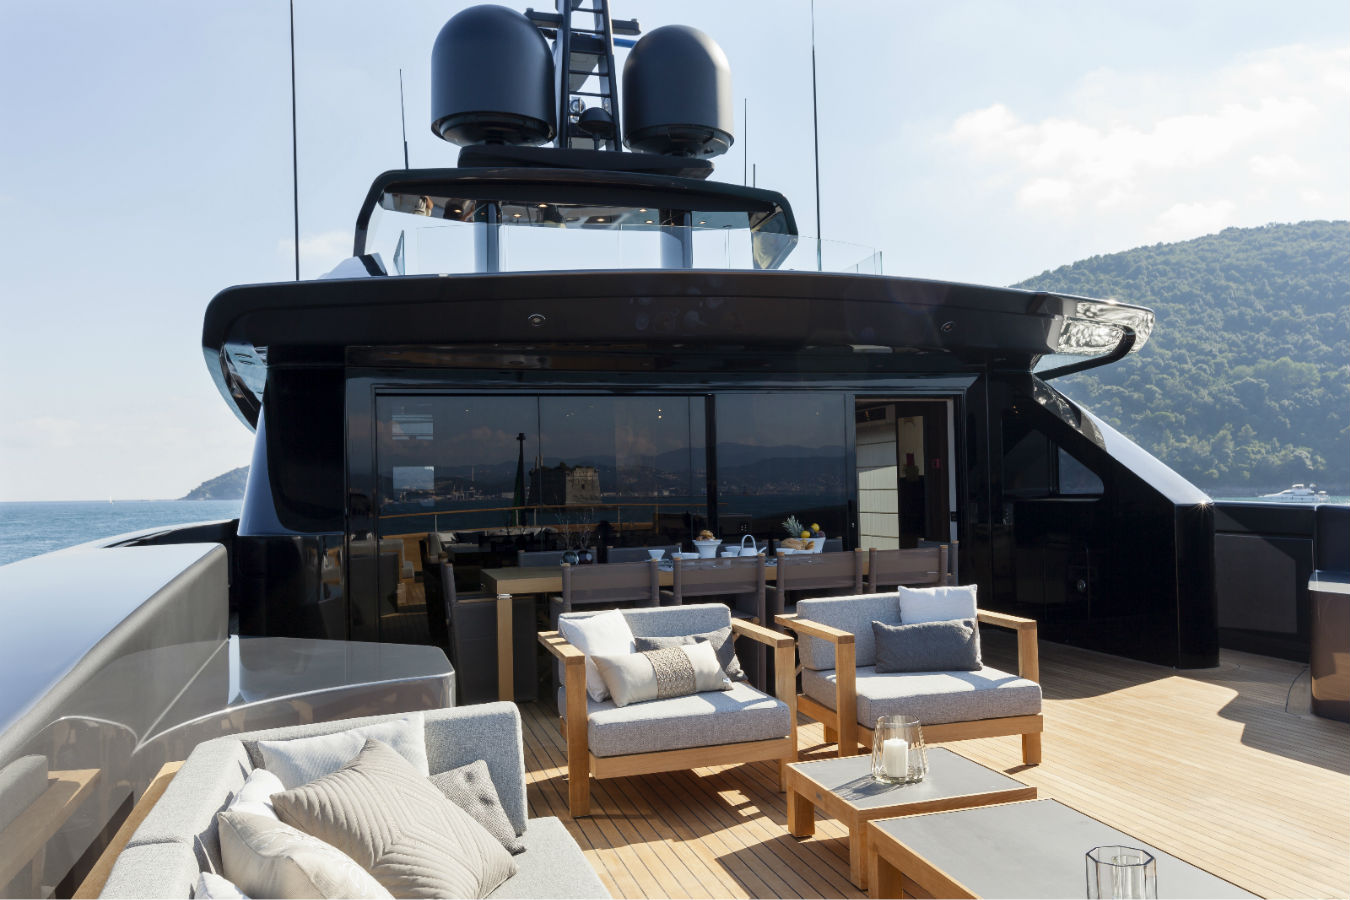 The Baglietto 46m Wins The World Superyacht Trophy For The Best Exterior  Design